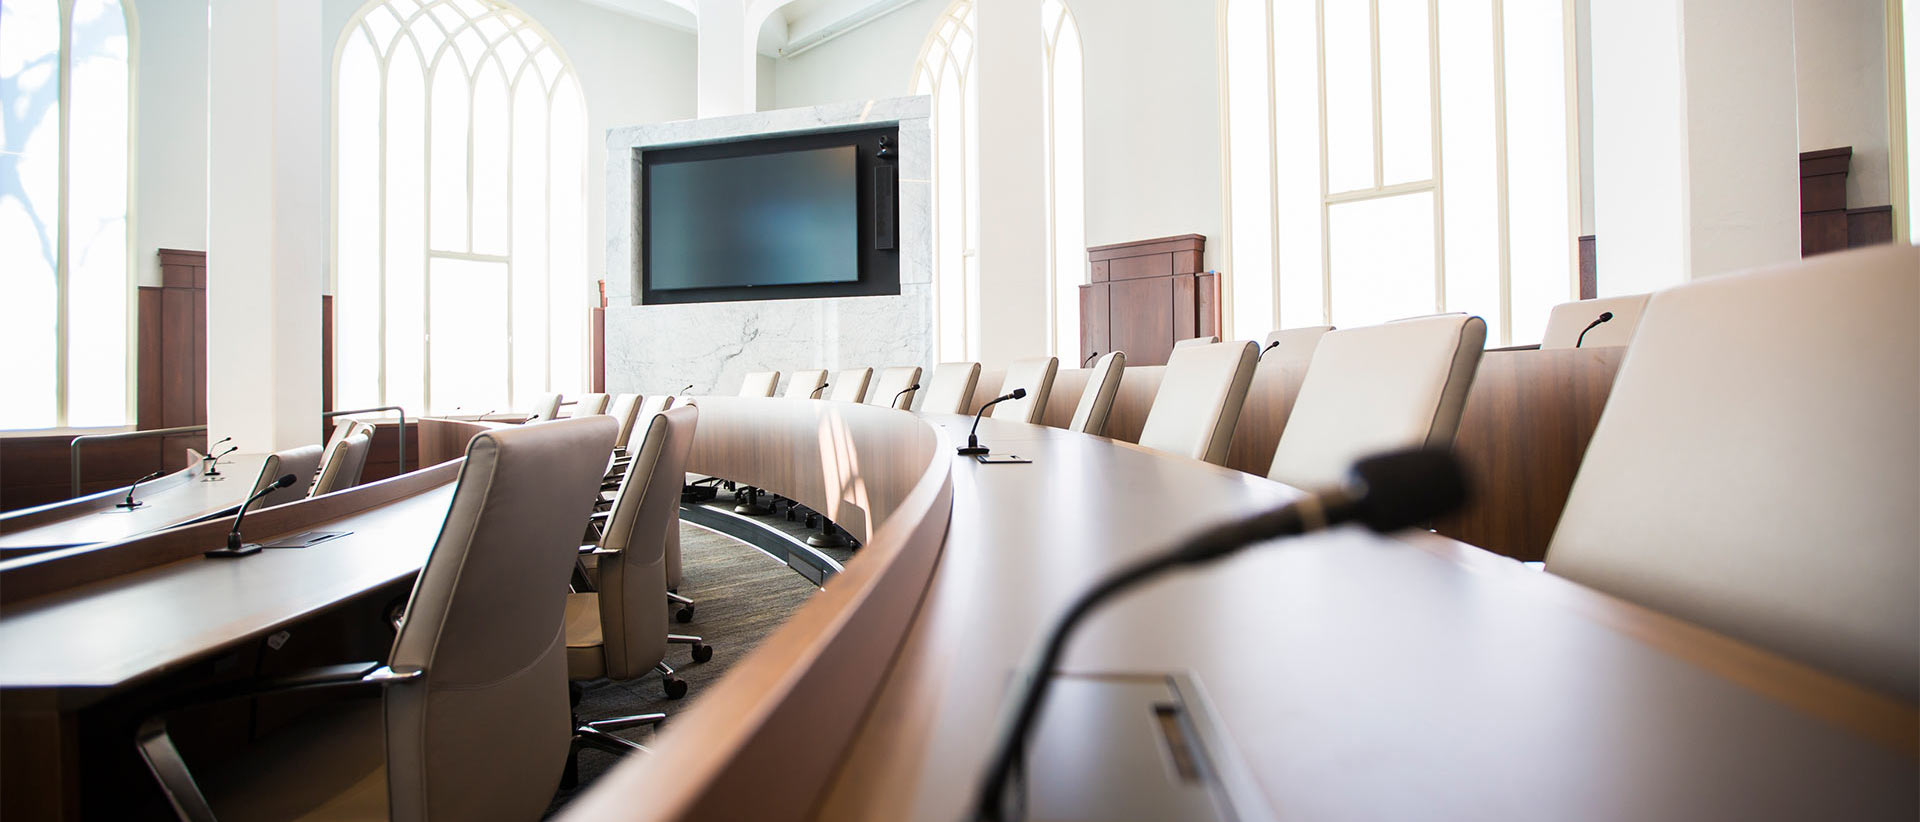 Meeting room in Convocation Hall